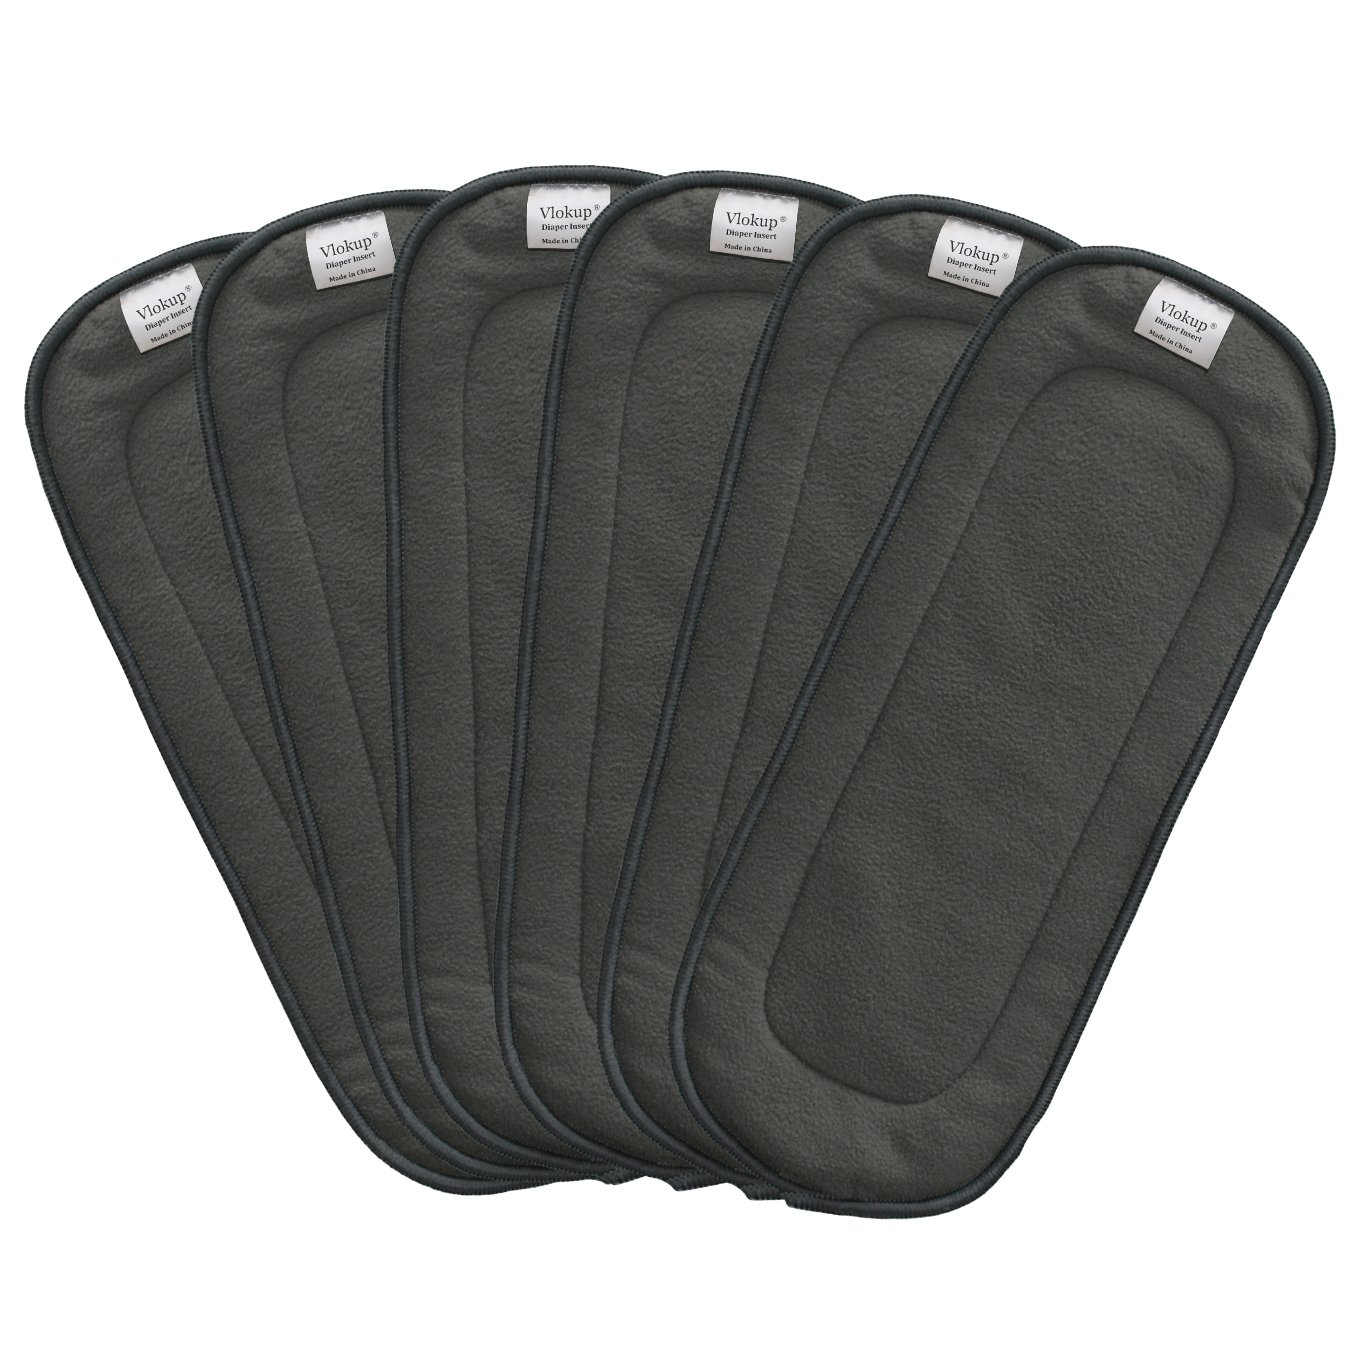 Vlokup Baby Cloth Diapers Inserts Overnight 5 Layer Infant Charcoal Bamboo Diaper Inserts Reusable Liners for Cloth Pocket Diapers Pack of 6